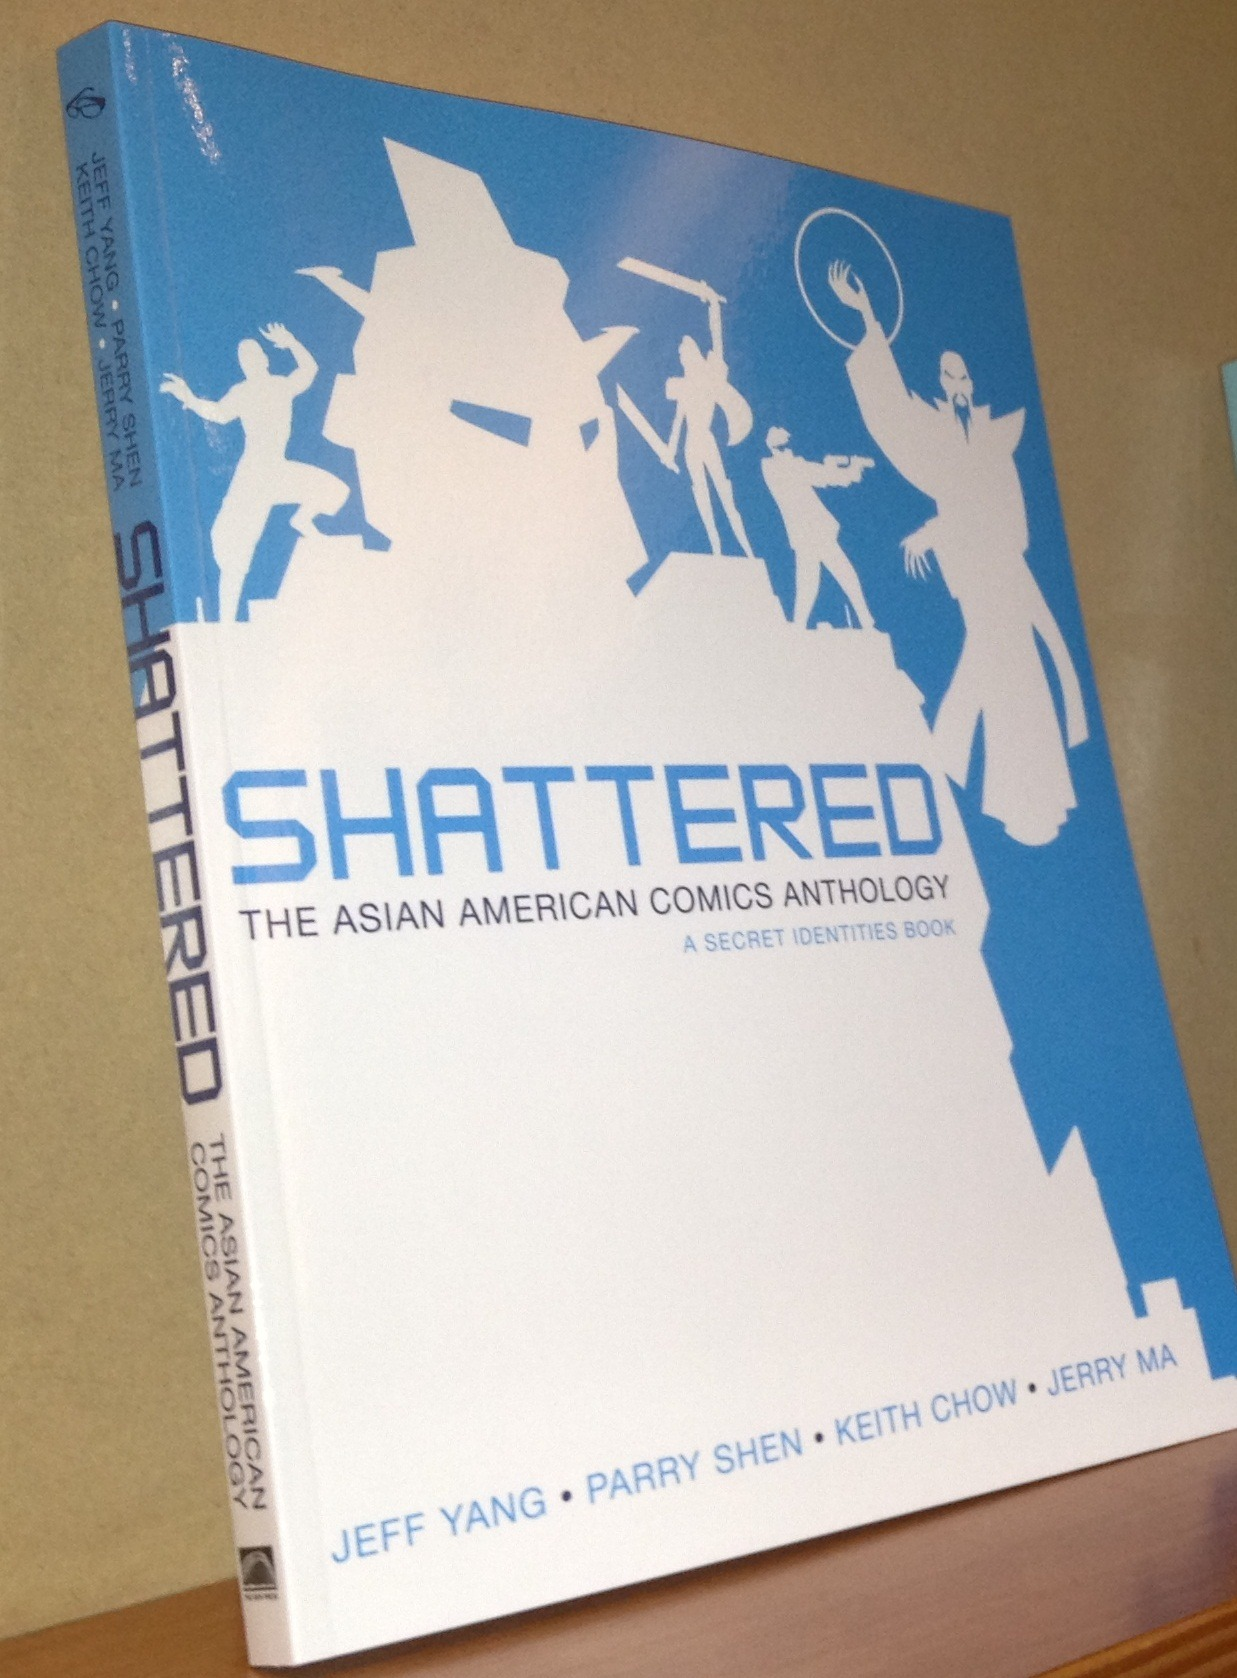 angrygirlcomics:  siuniverse:  Want a free copy of #SHATTERED? Help us get to 2,000 likes on Facebook and 1,000 follows on twitter by Monday the 15th and a random fan gets this.  you guys I've been sitting on this news since July because I couldn't quite believe I was going to be a part of this but I saw the book in person last night which made everything a reality I'M PUBLISHED and I feel so honored to be a part of this!!!!!  Shattered is my first official printed work & you should all follow and support this for all of the amazing people involved, including my good friend Alice Li who did the art for one of the stories. my comic is the two-page acknowledgment for the Vilcek Foundation, the fine philanthropist folks who donated to make publication possible. so please check it out either at MOCA, NYCC this weekend, or buy it on Amazon, & make sure to follow the crew on both FB and Twitter!